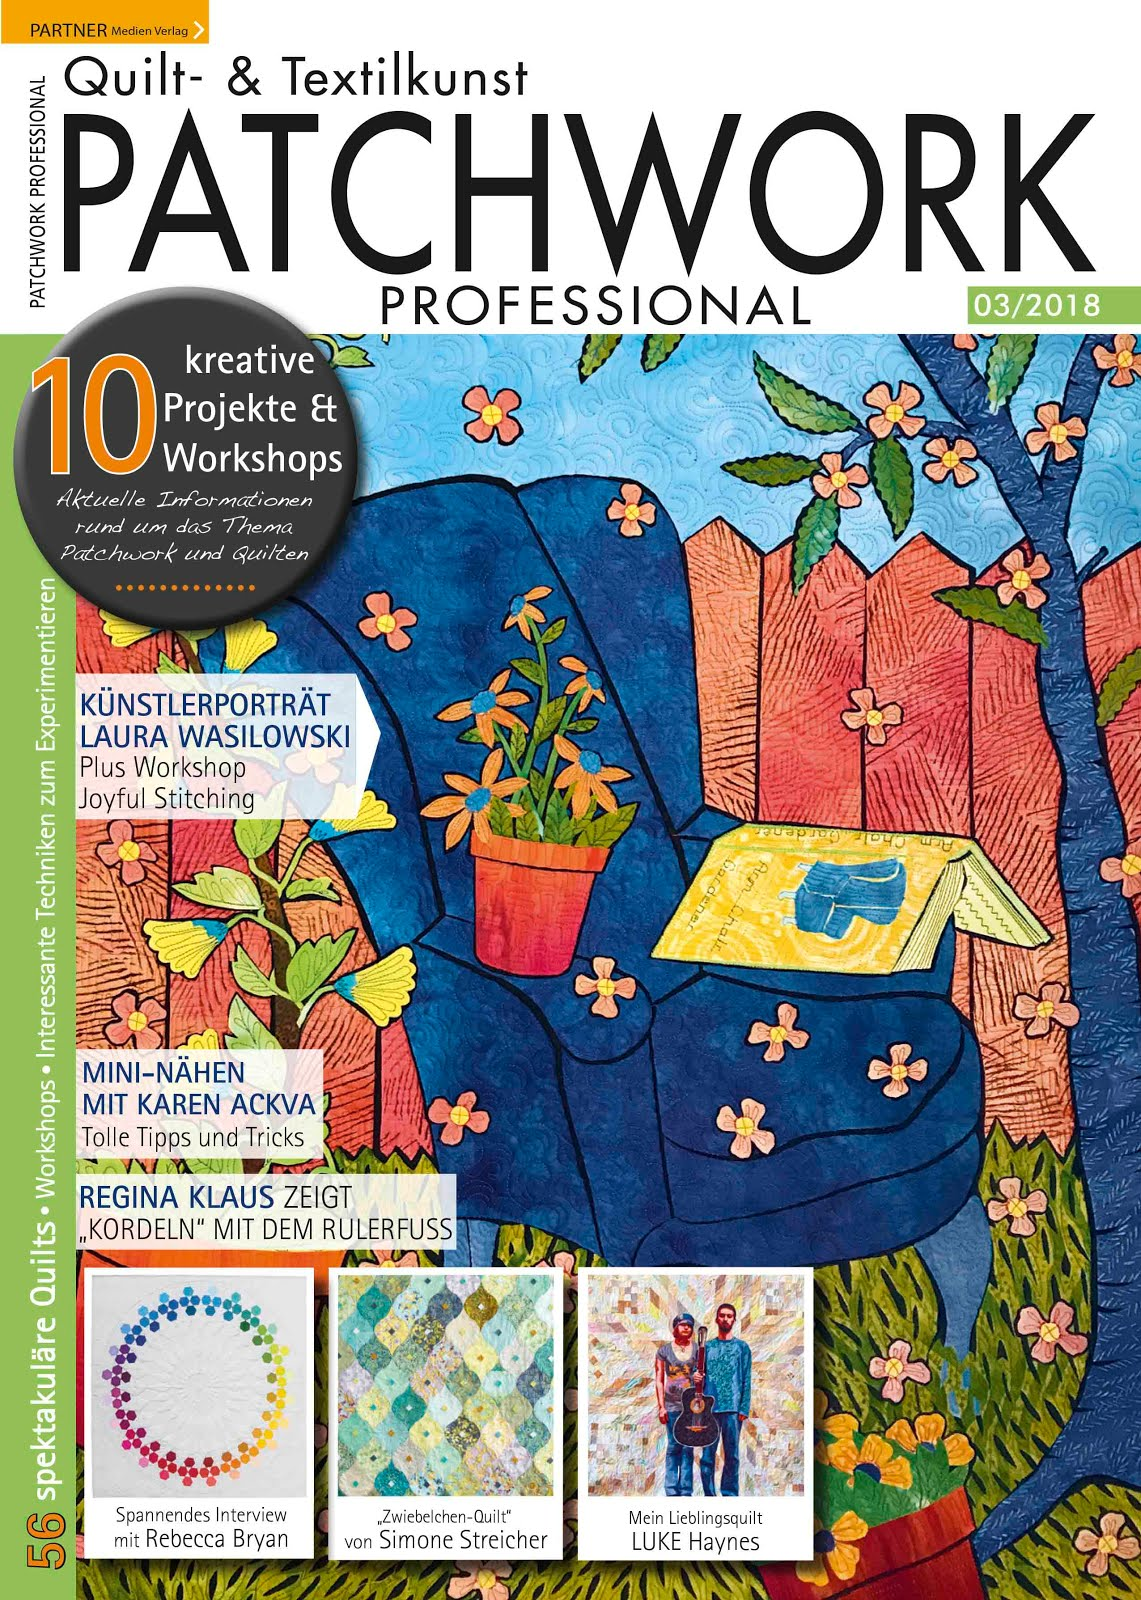 Patchwork Professional 3/2018